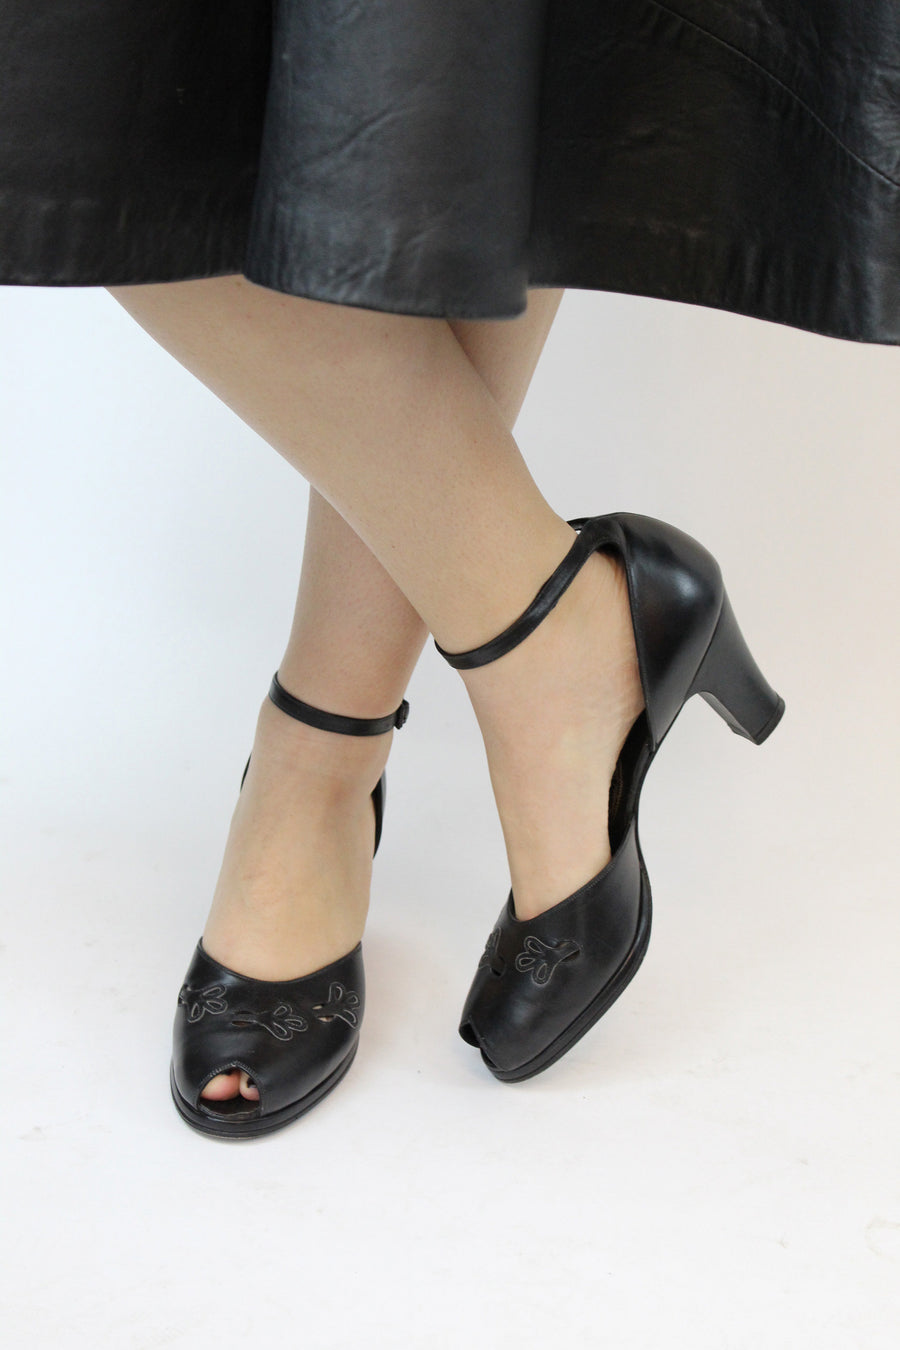 1940s platform ankle strap shoes | vintage cut out peep toes | size 9 us